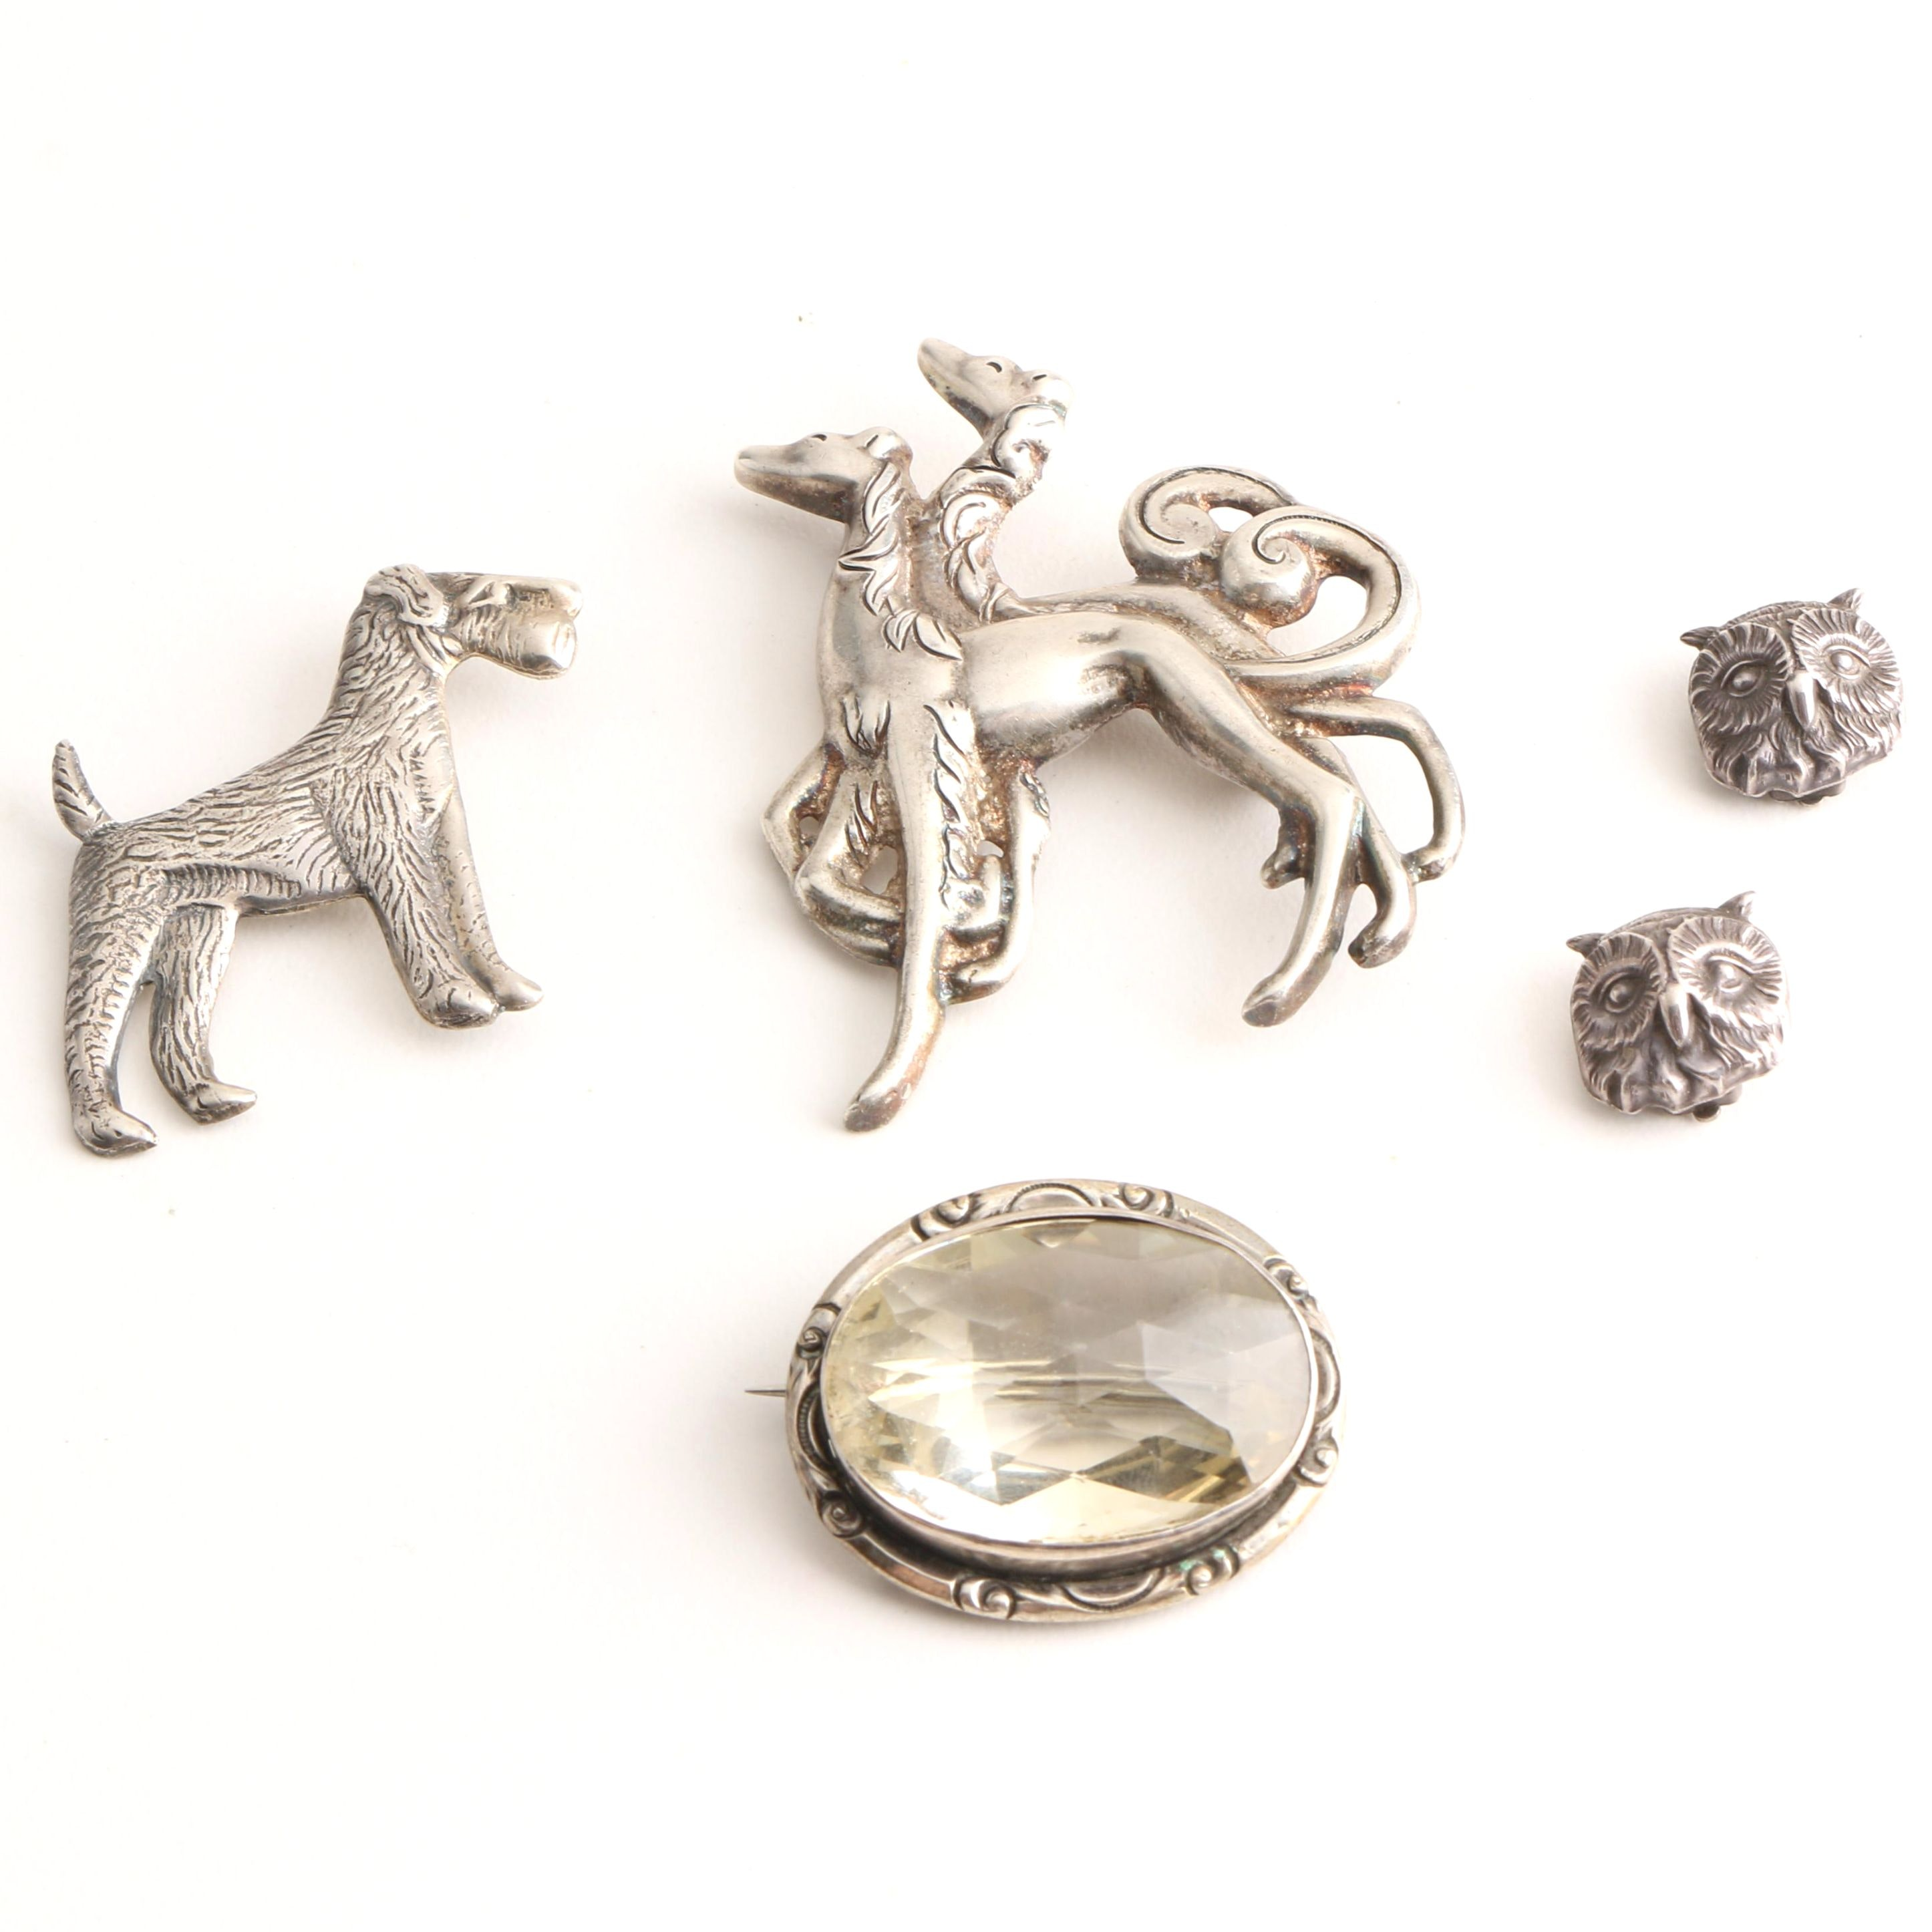 Sterling Silver Jewelry Featuring Citrine and Animal Motifs